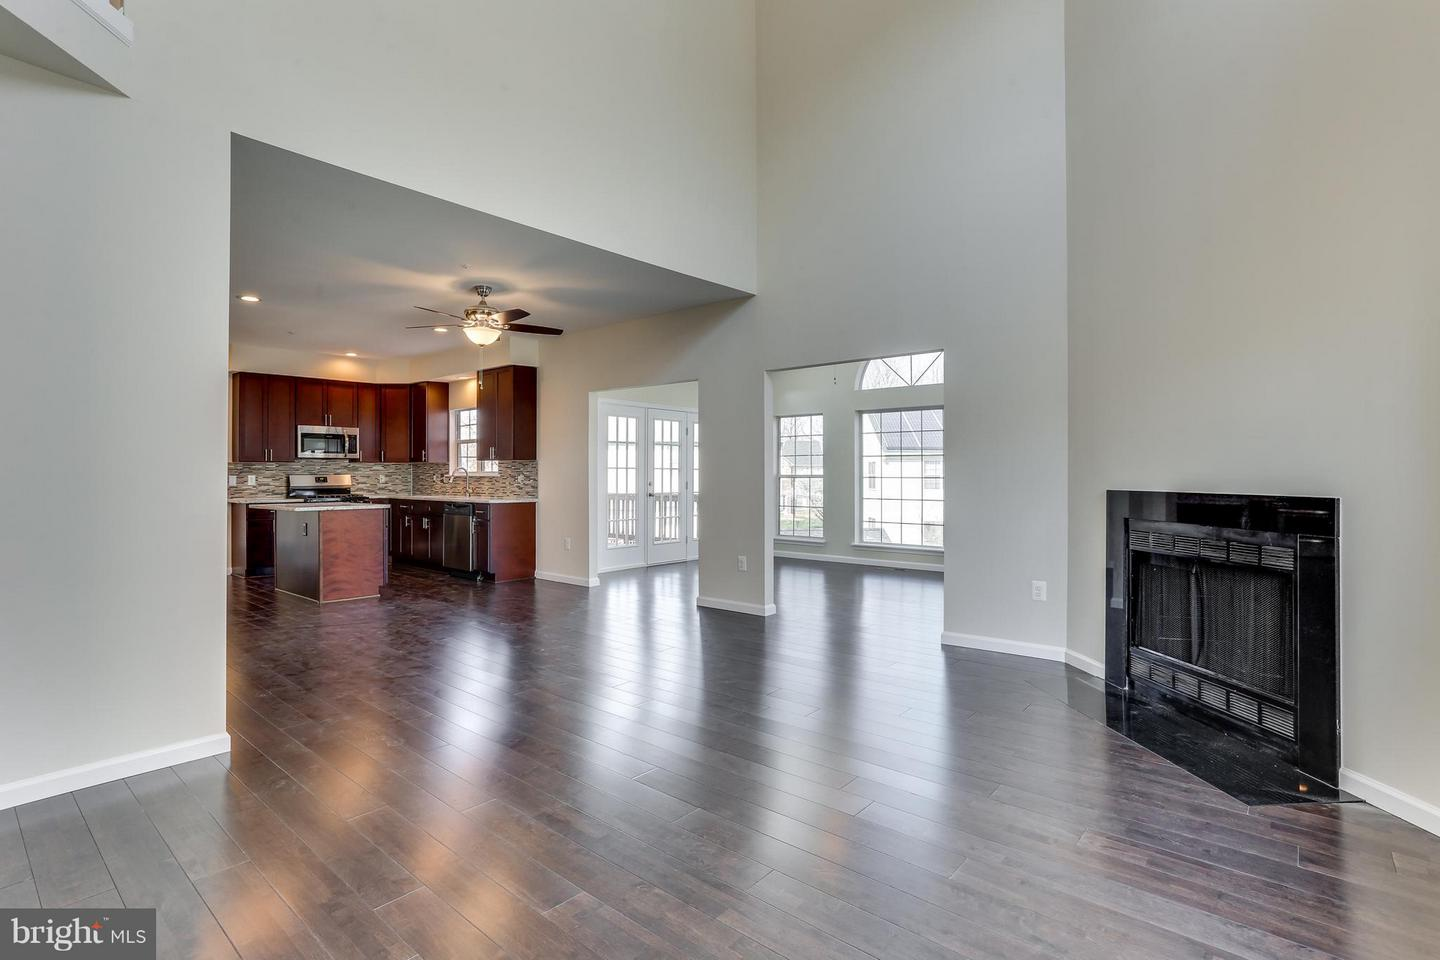 Other Residential for Sale at ARBOR PARK, 903 Falls Lake Bowie, Maryland 20721 United States